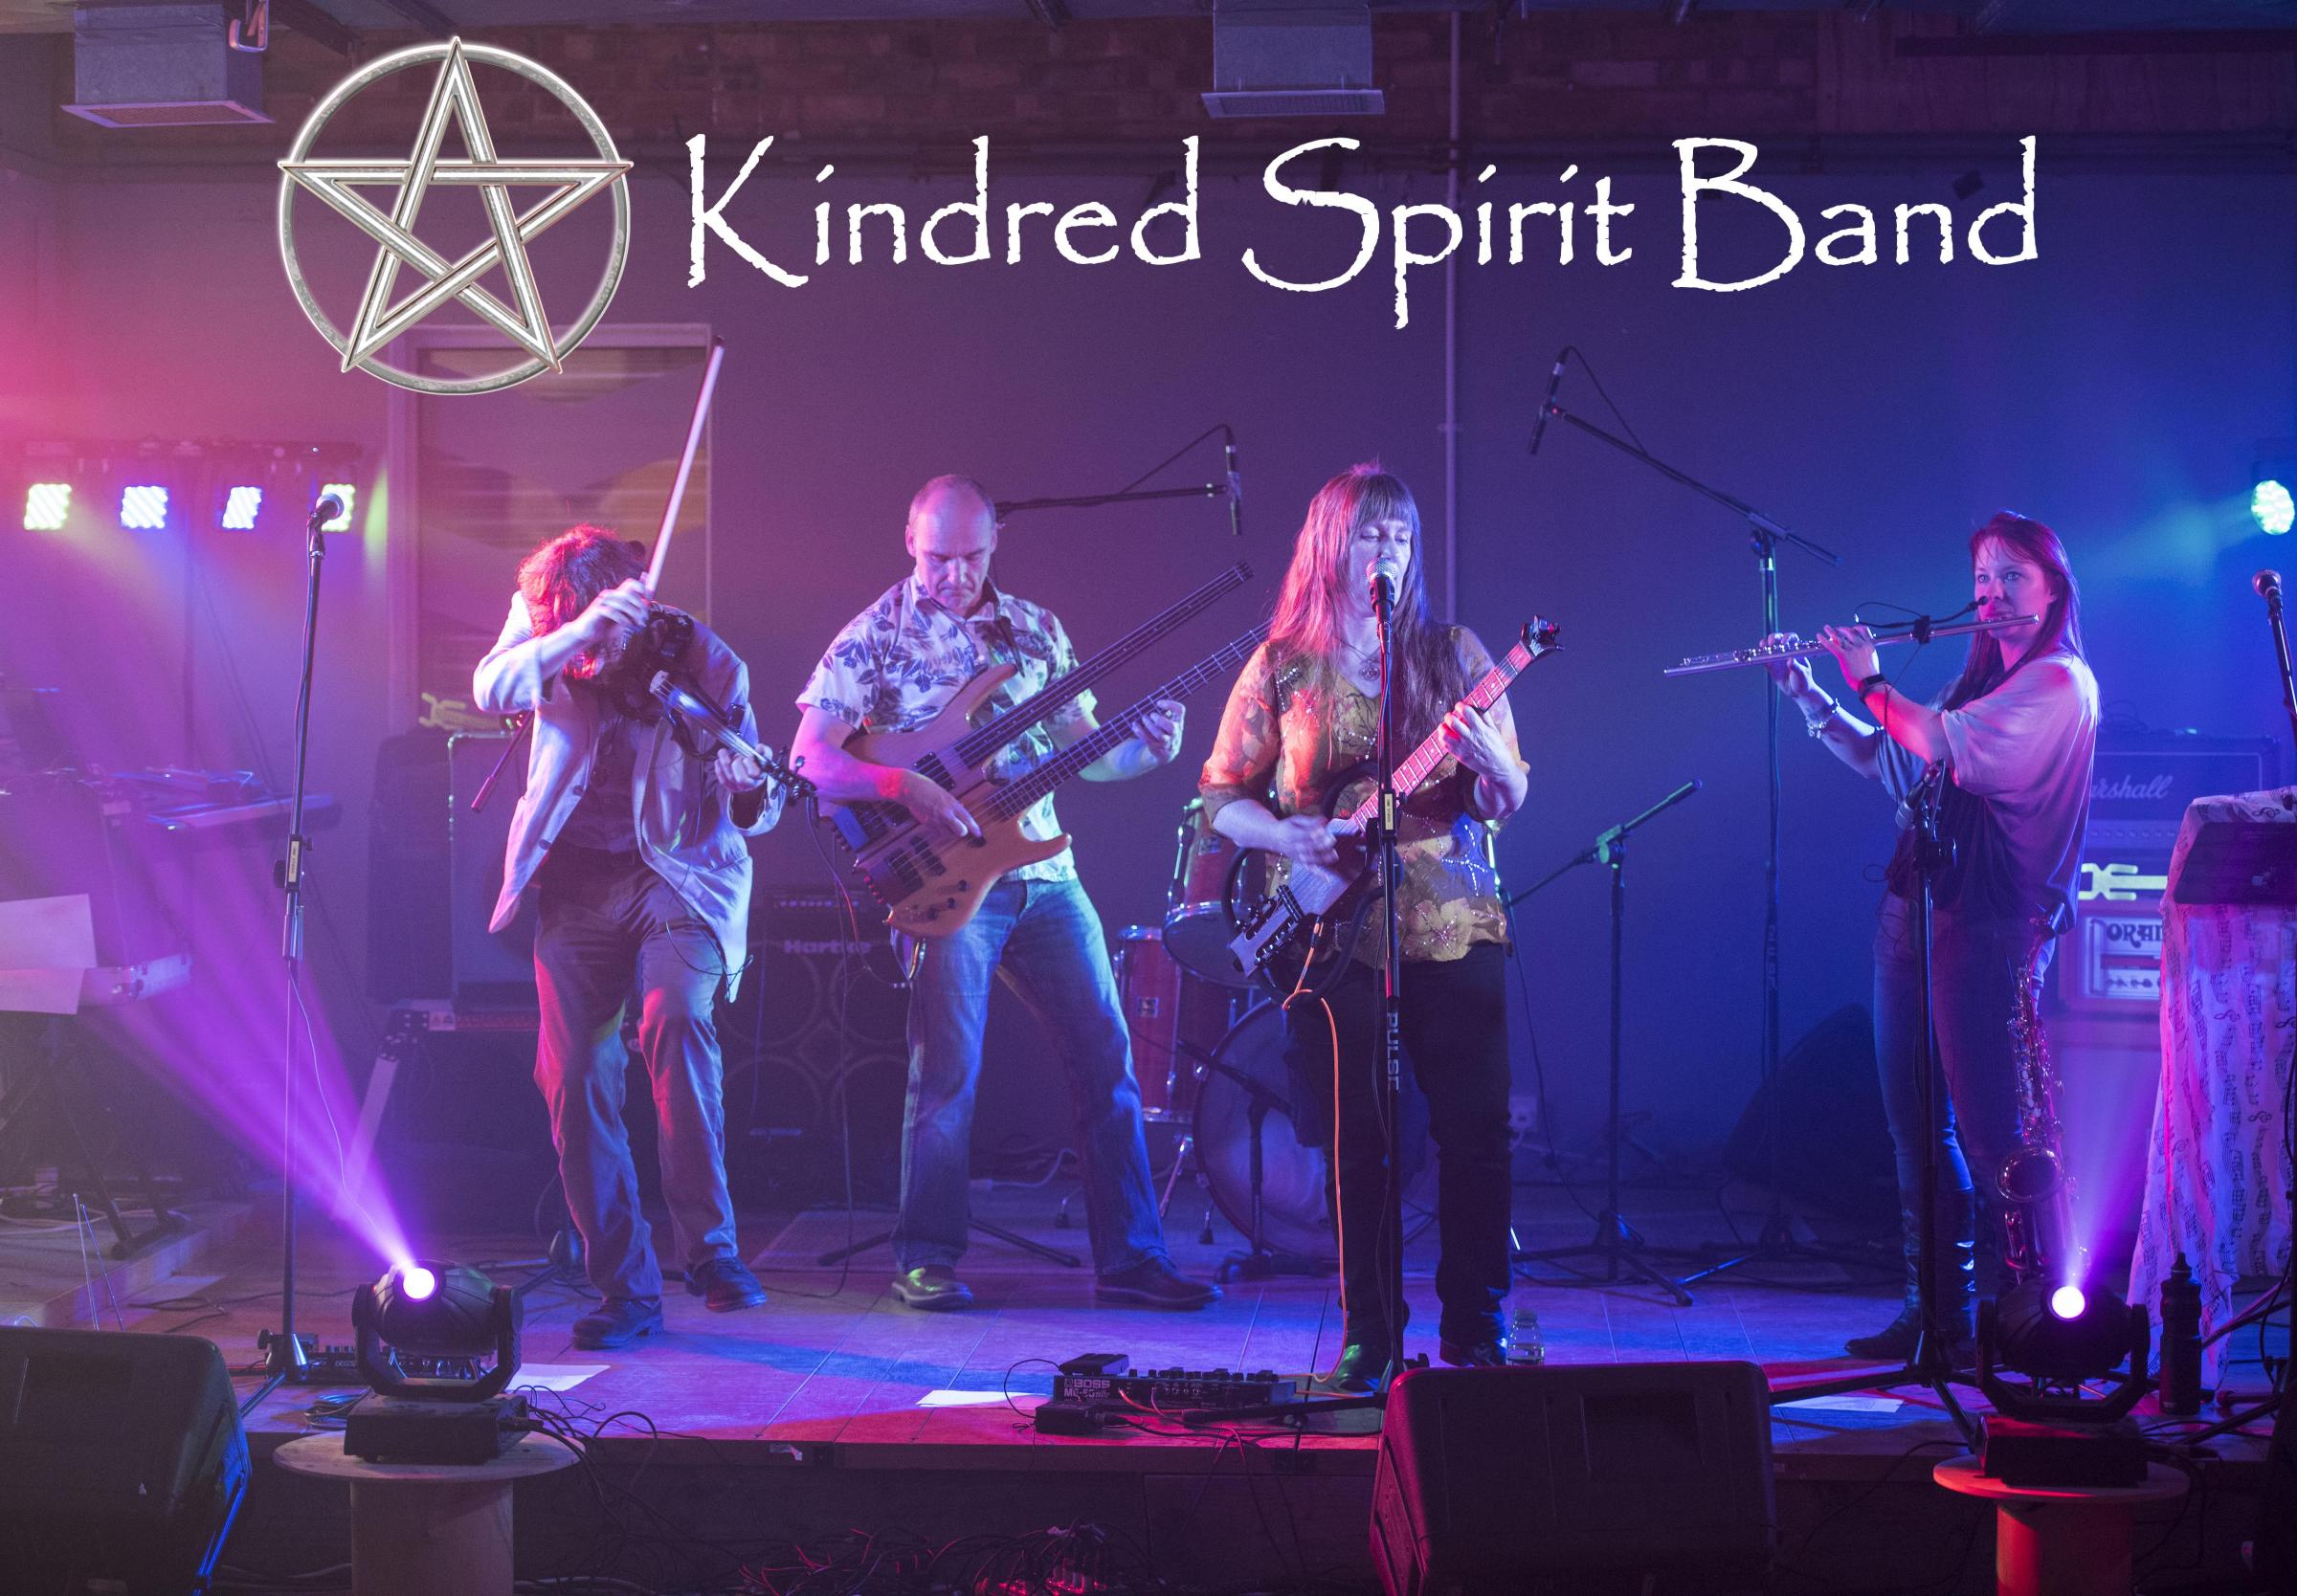 Kindred Spirit Band